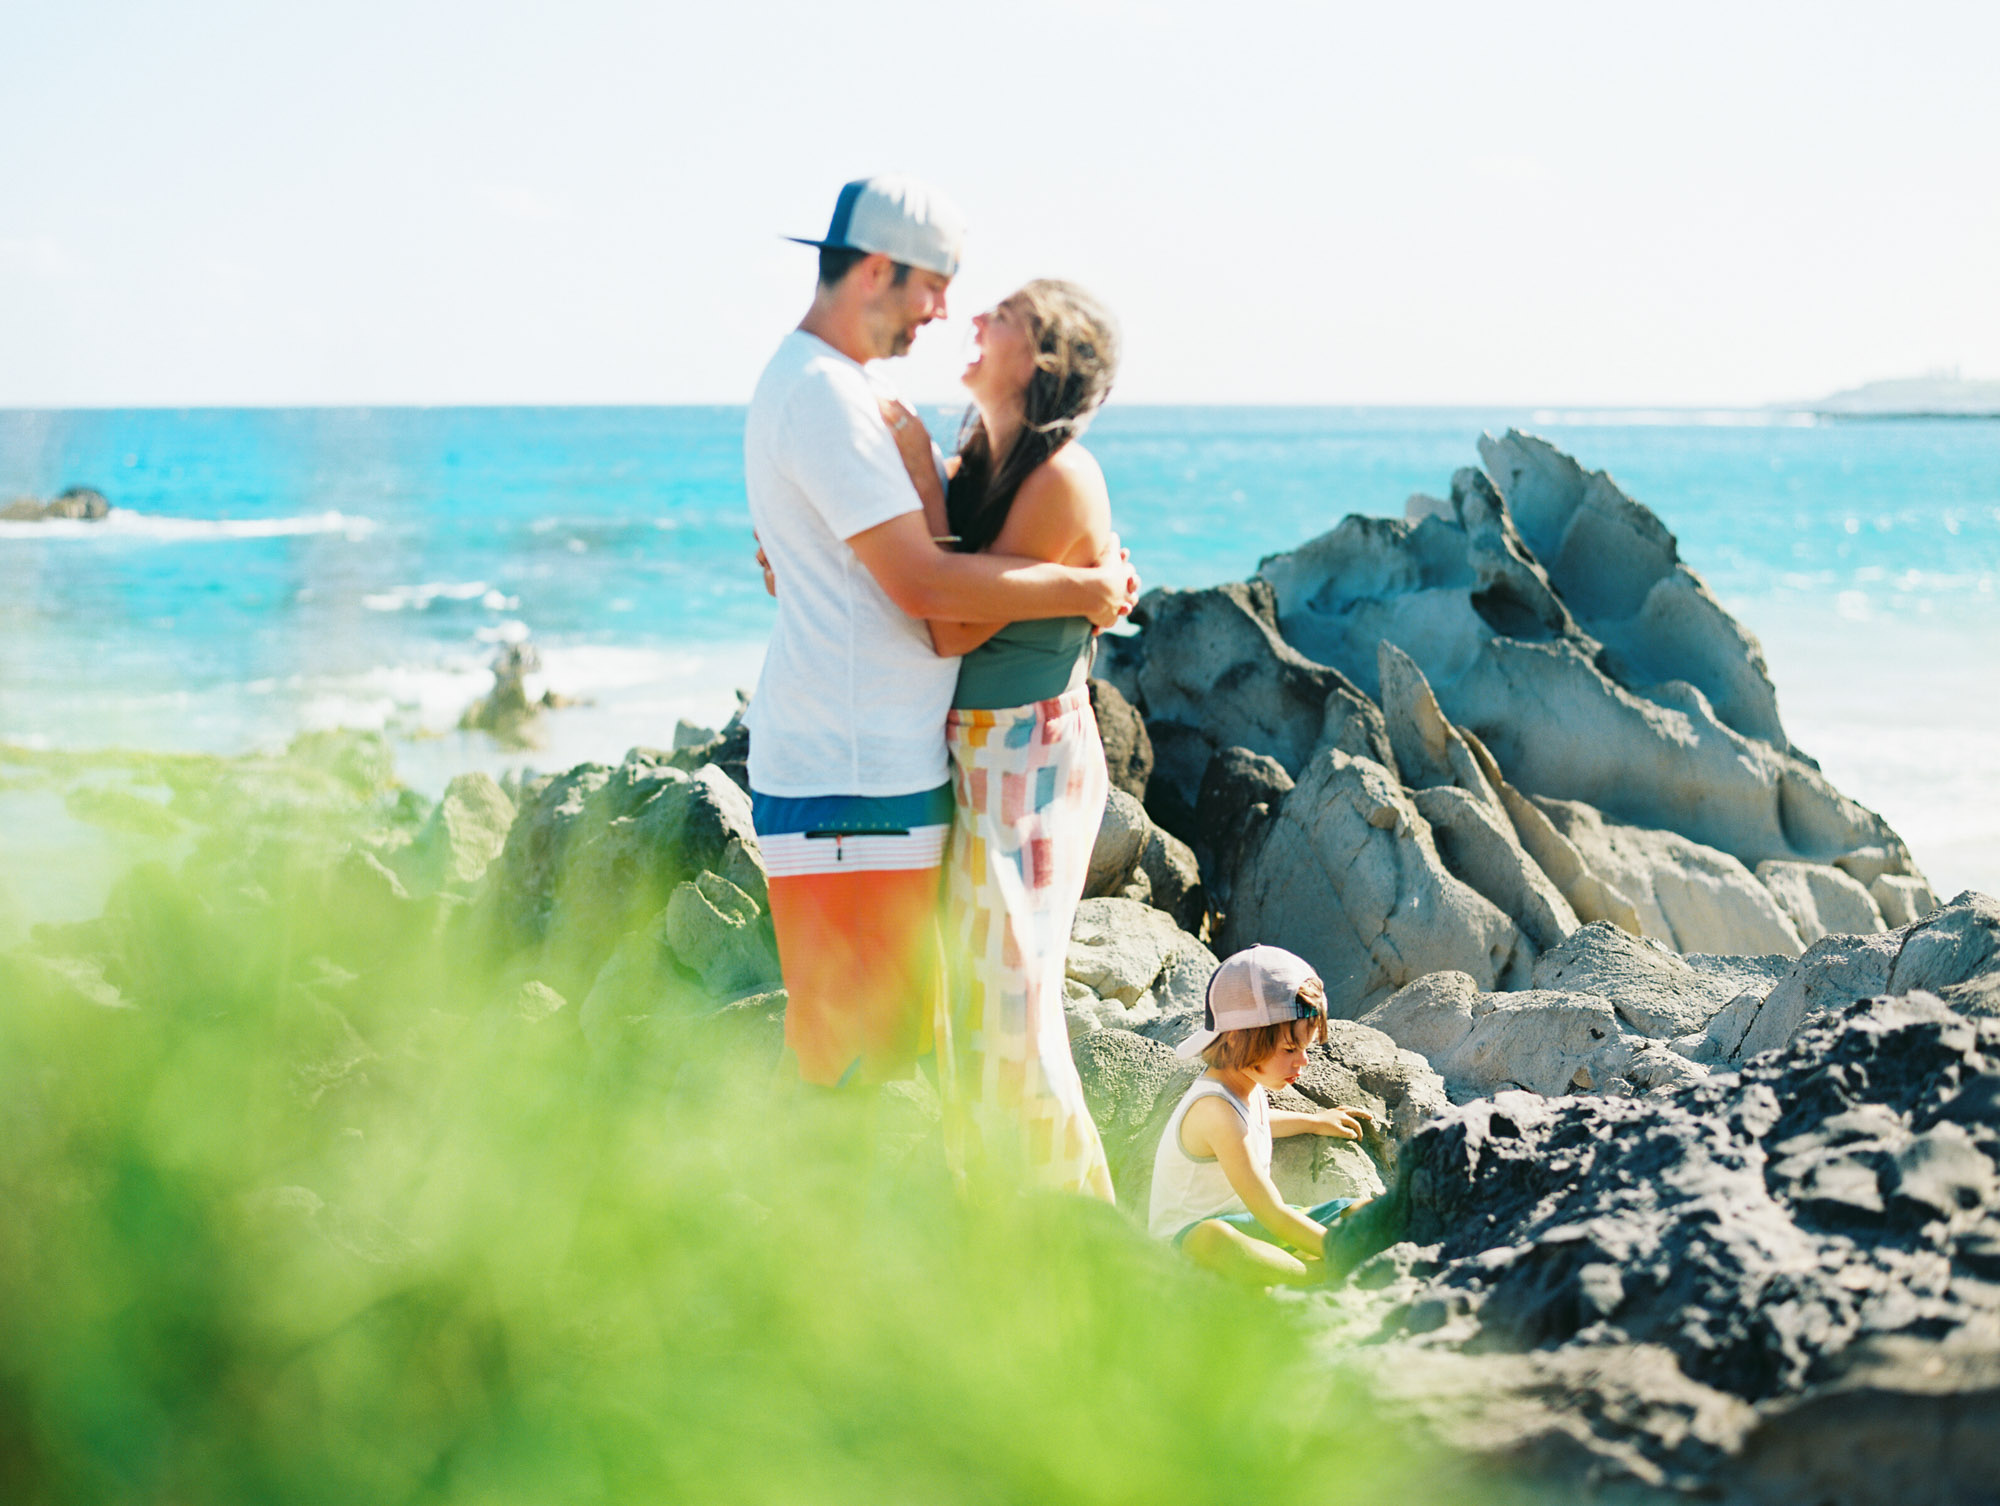 maui family photography session on the beach in west maui by film photographer wendy laurel-